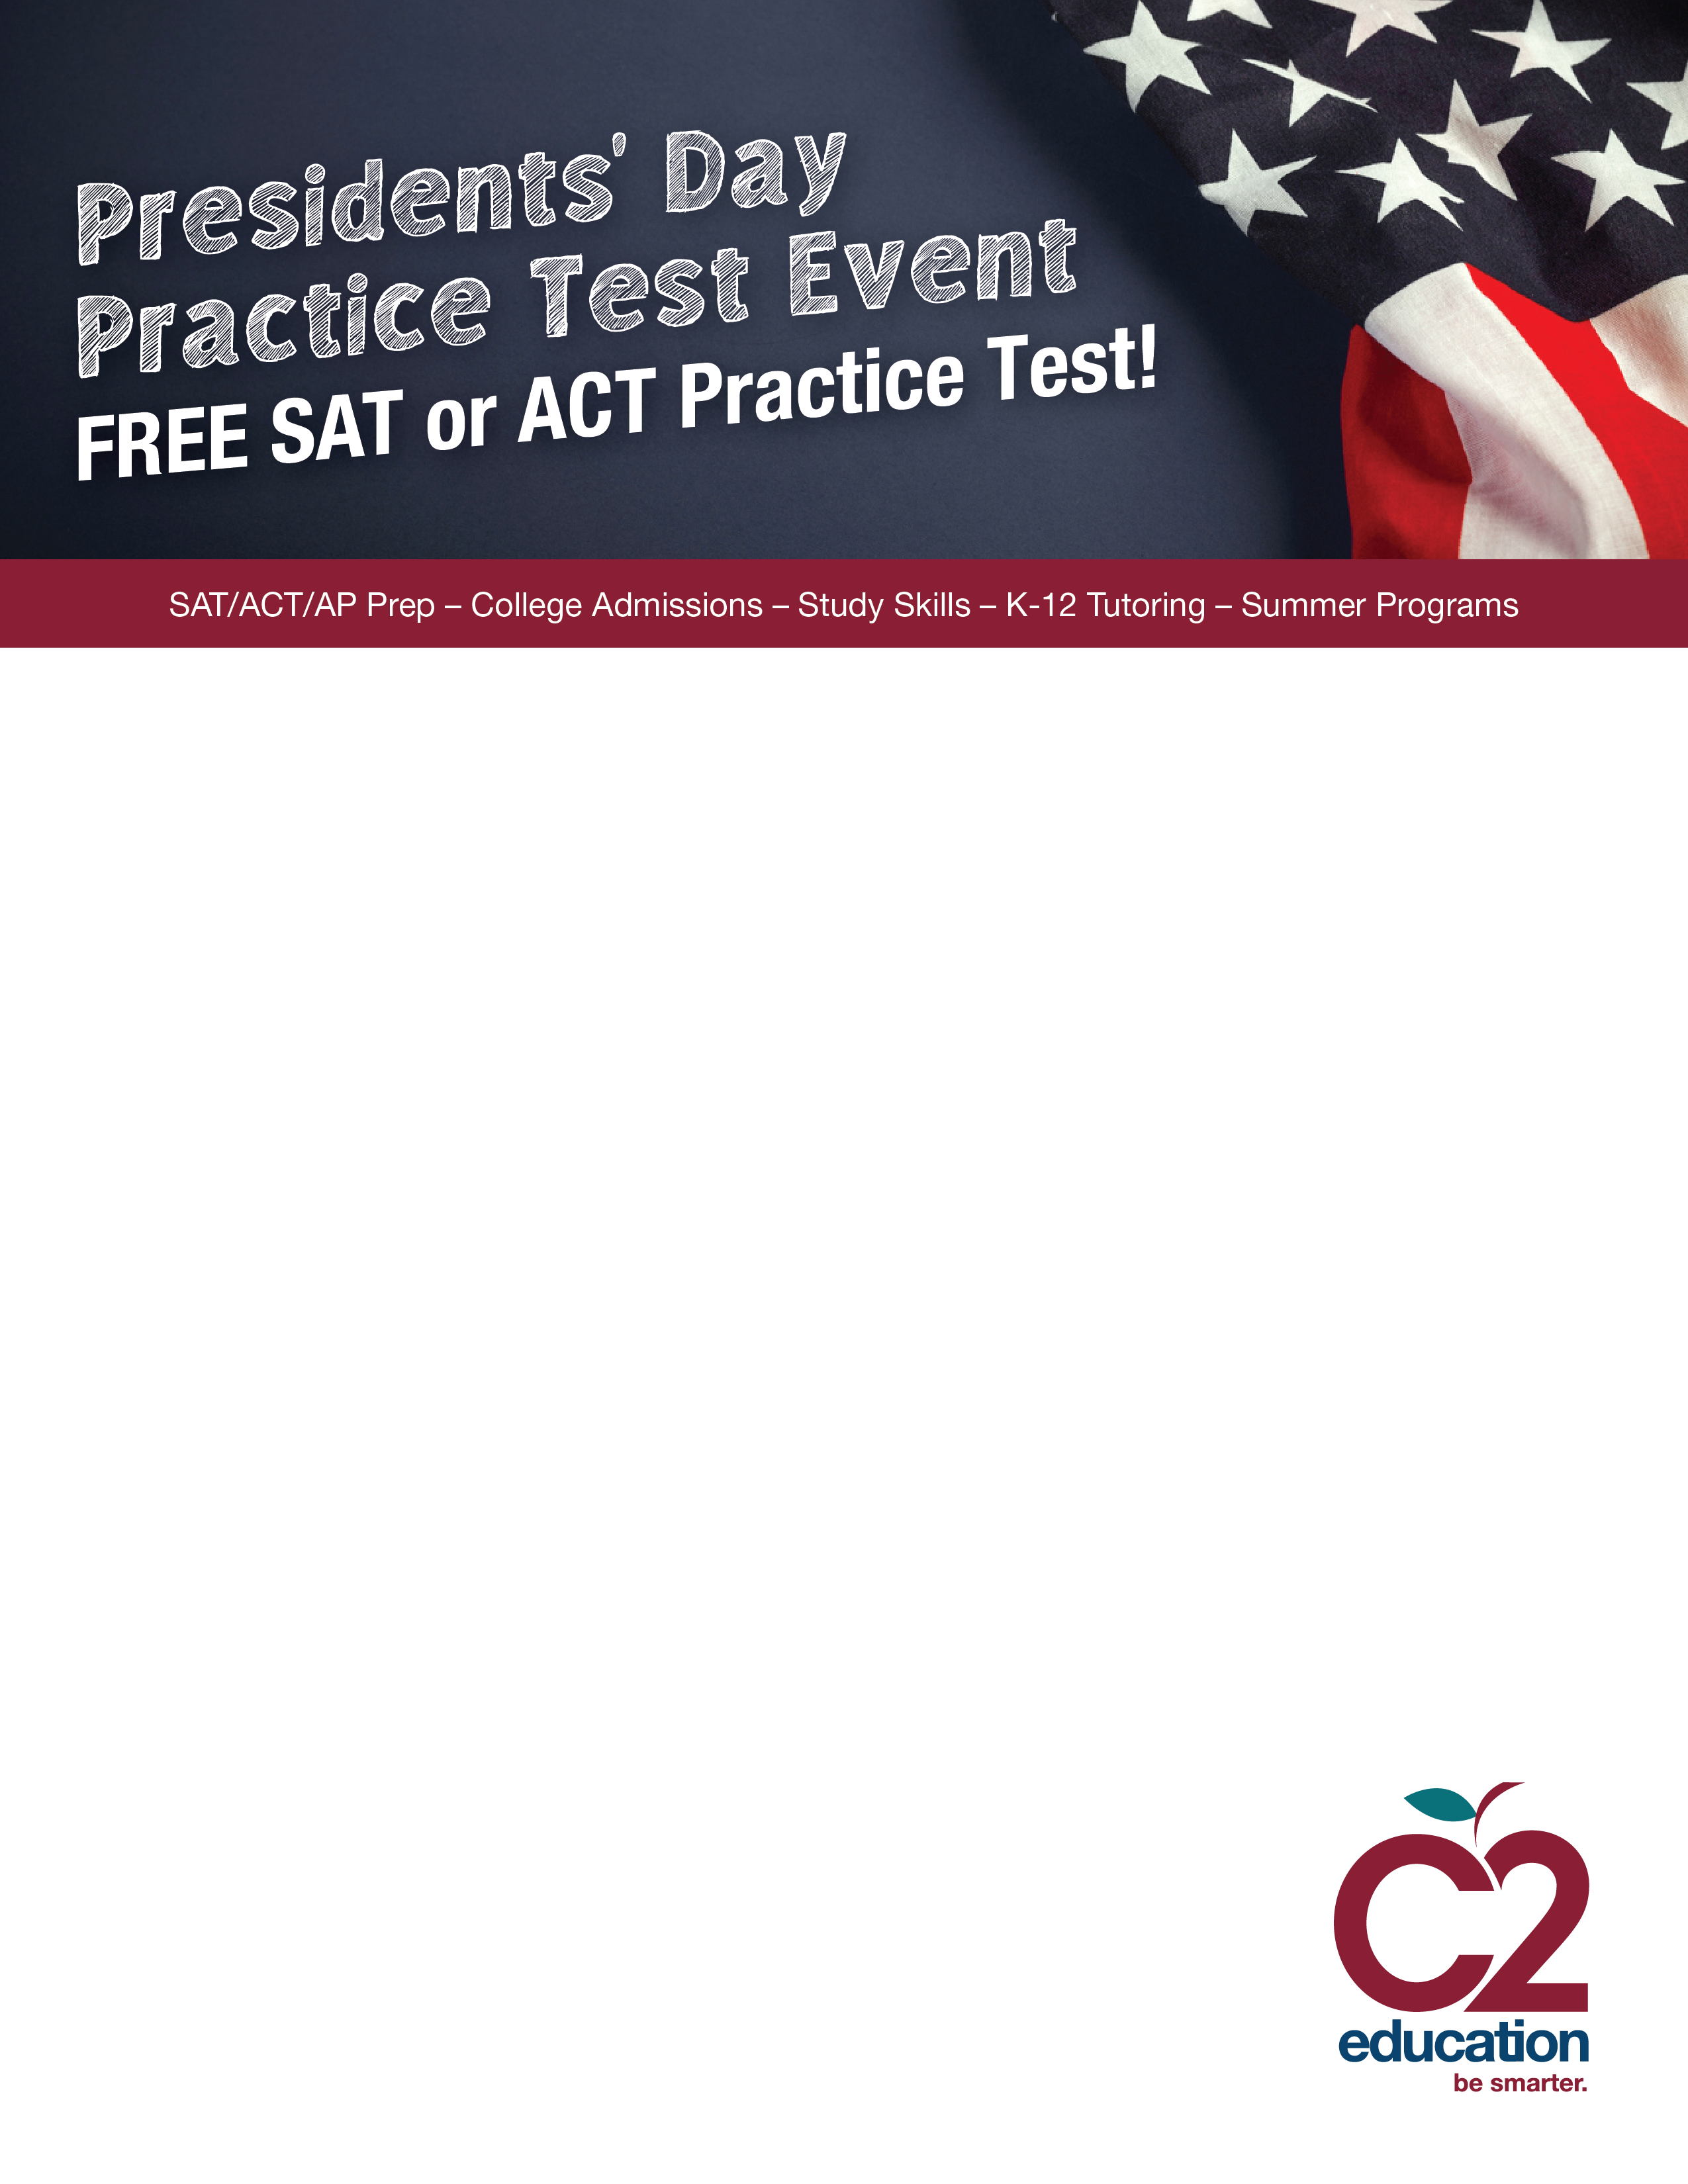 Free SAT/ACT Practice Test Event